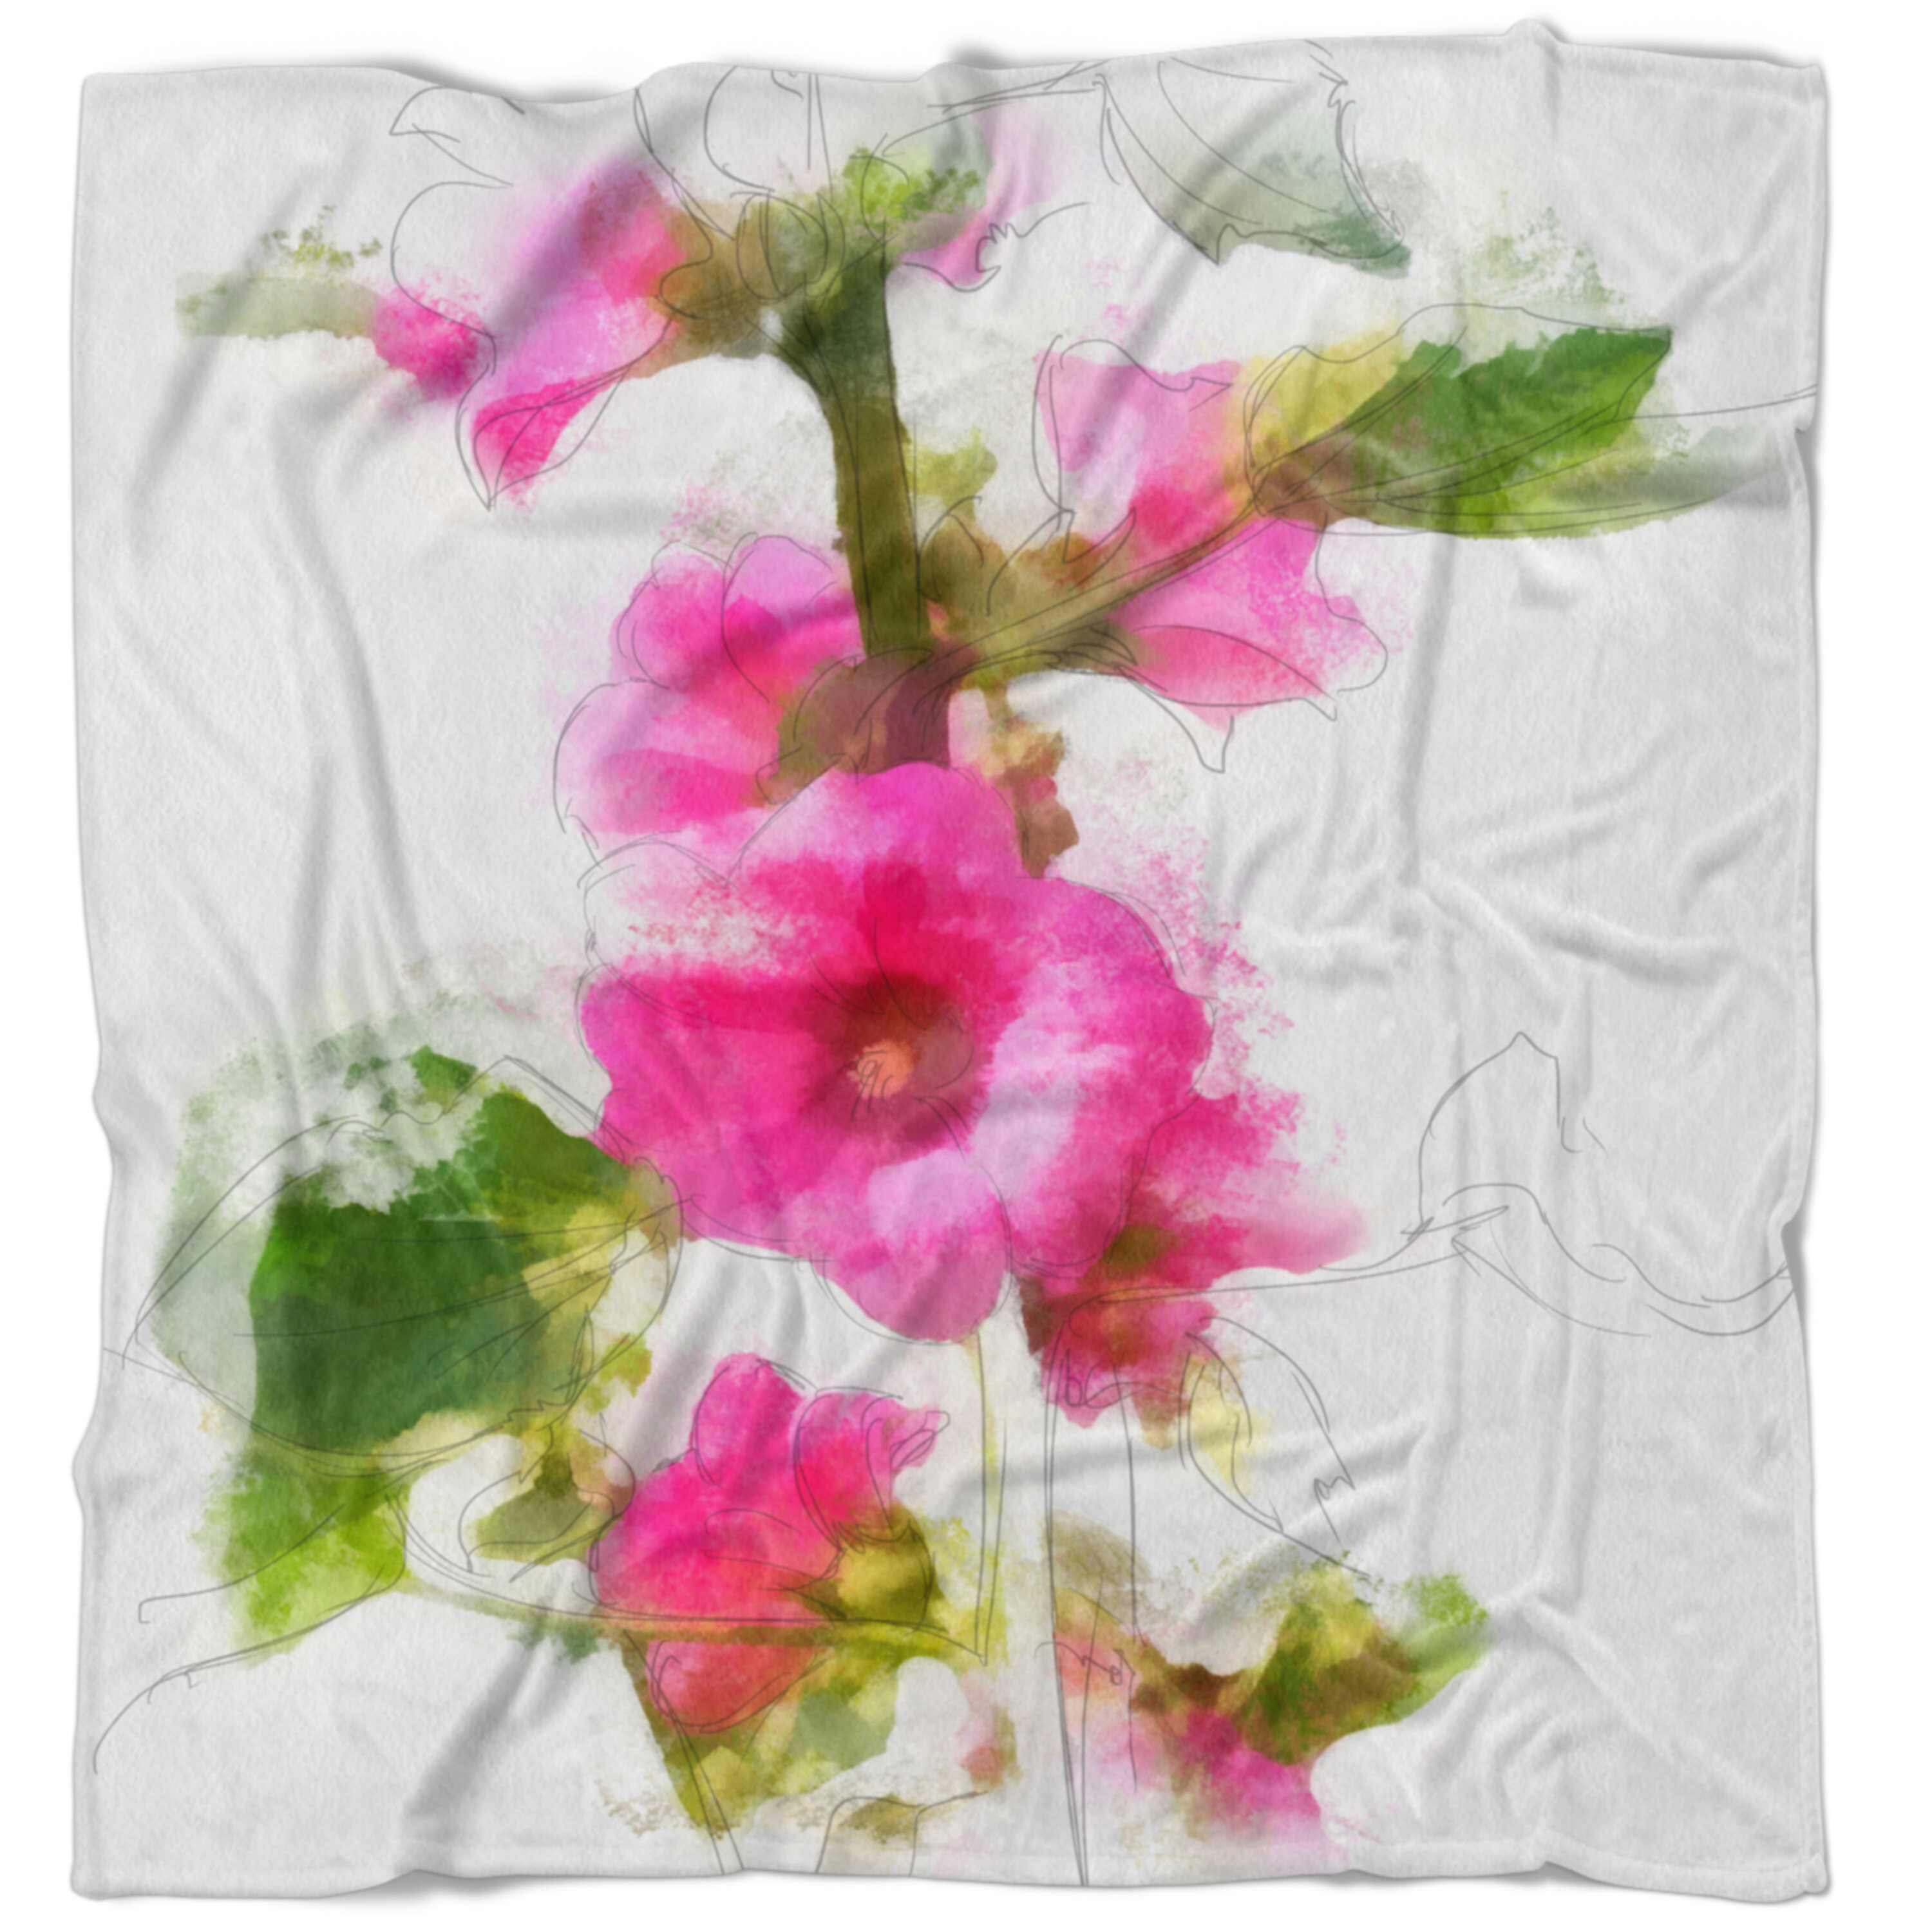 East Urban Home Floral Flower With Stem And Leaves Blanket Wayfair